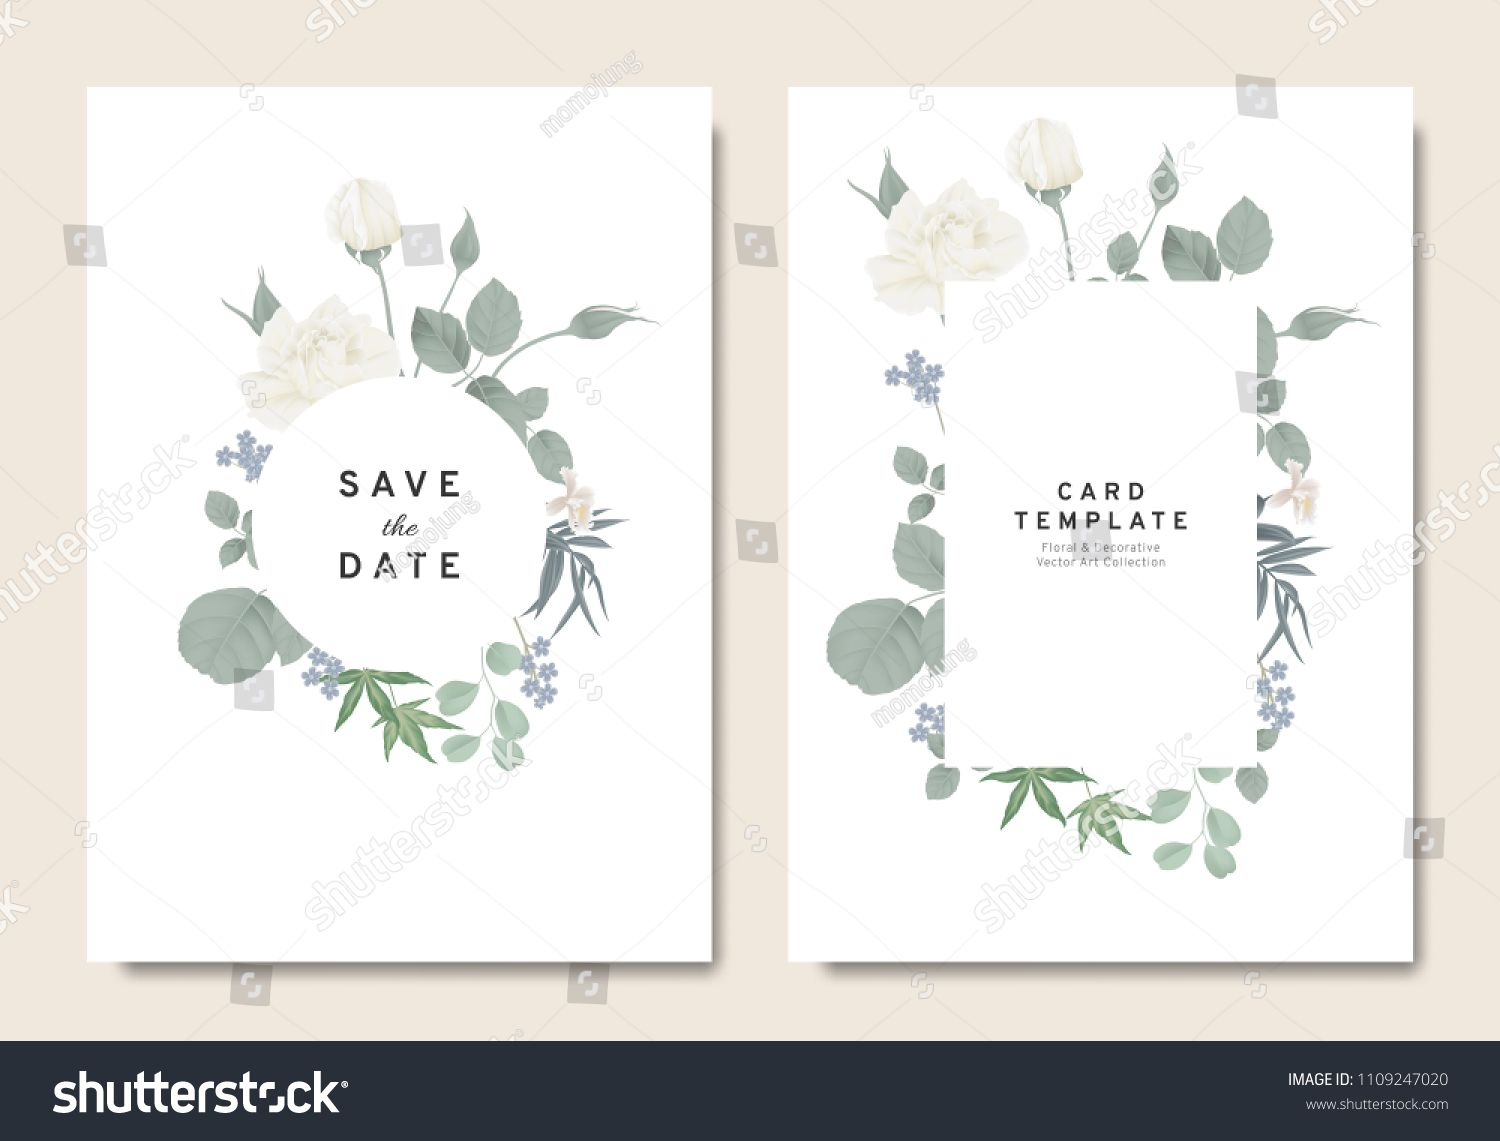 Floral Wedding Invitation Card Template Design Bouquets Of White Ro Floral Wedding Invitation Card Floral Wedding Invitations Wedding Invitation Card Template